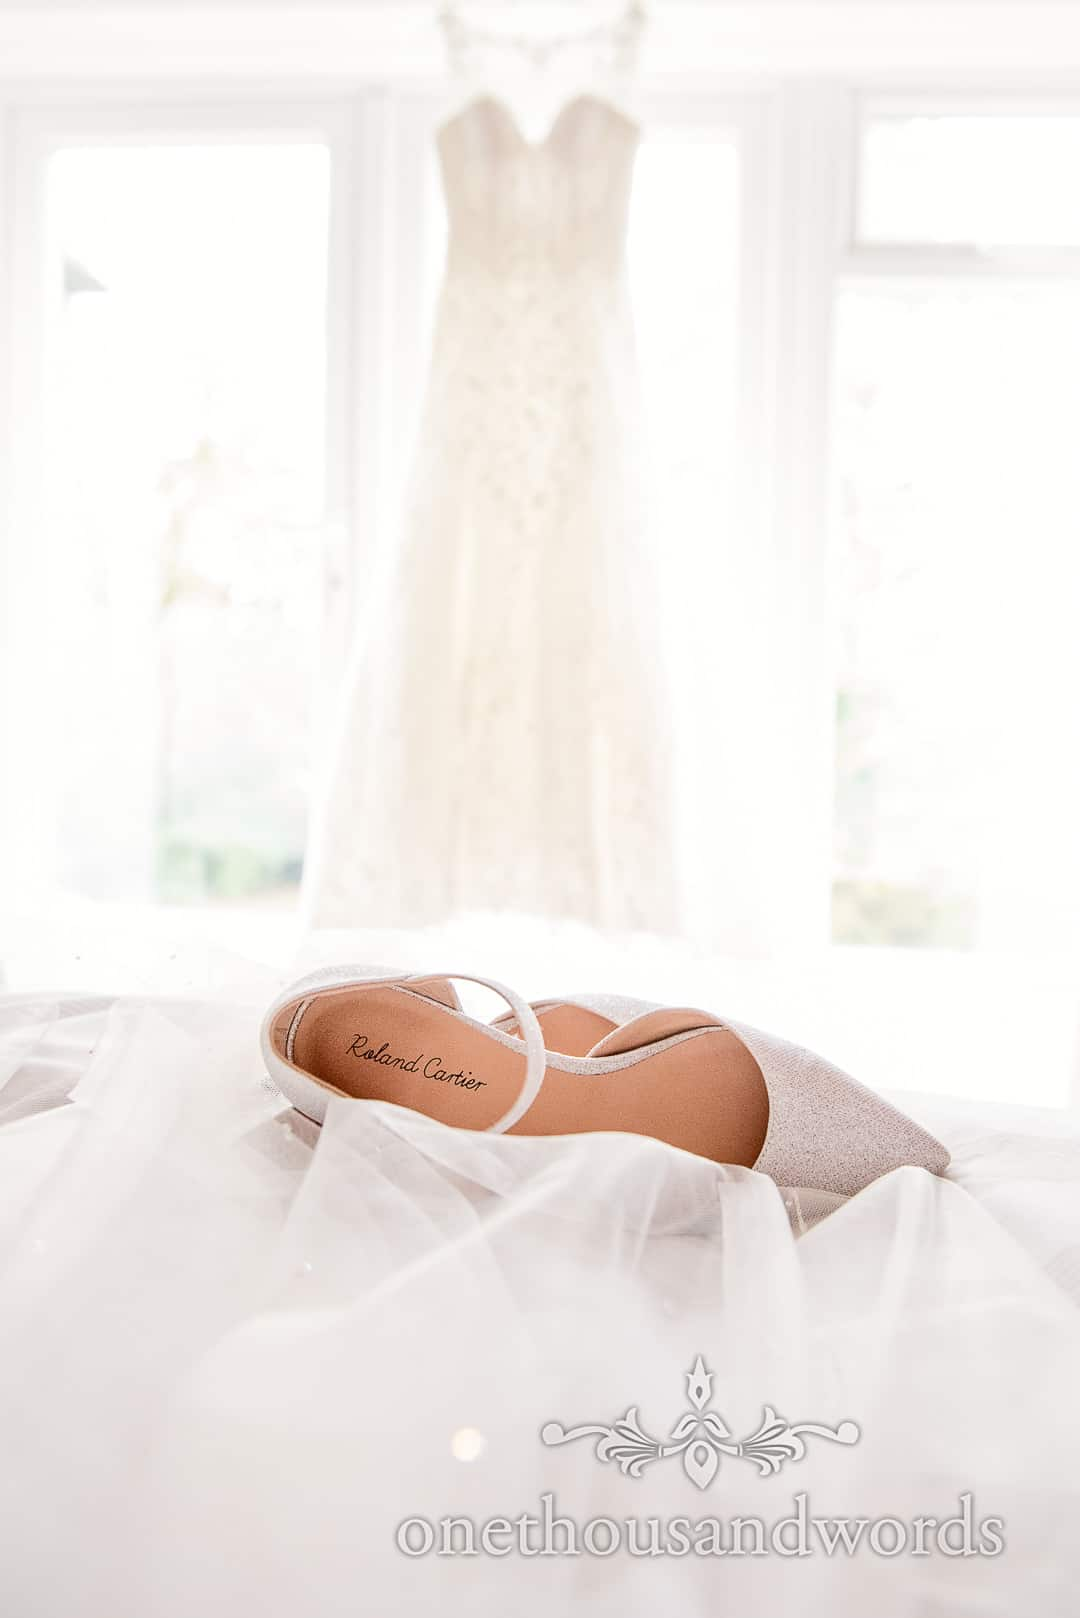 Roland Cartier white wedding shoes rest on veil with wedding dress in background